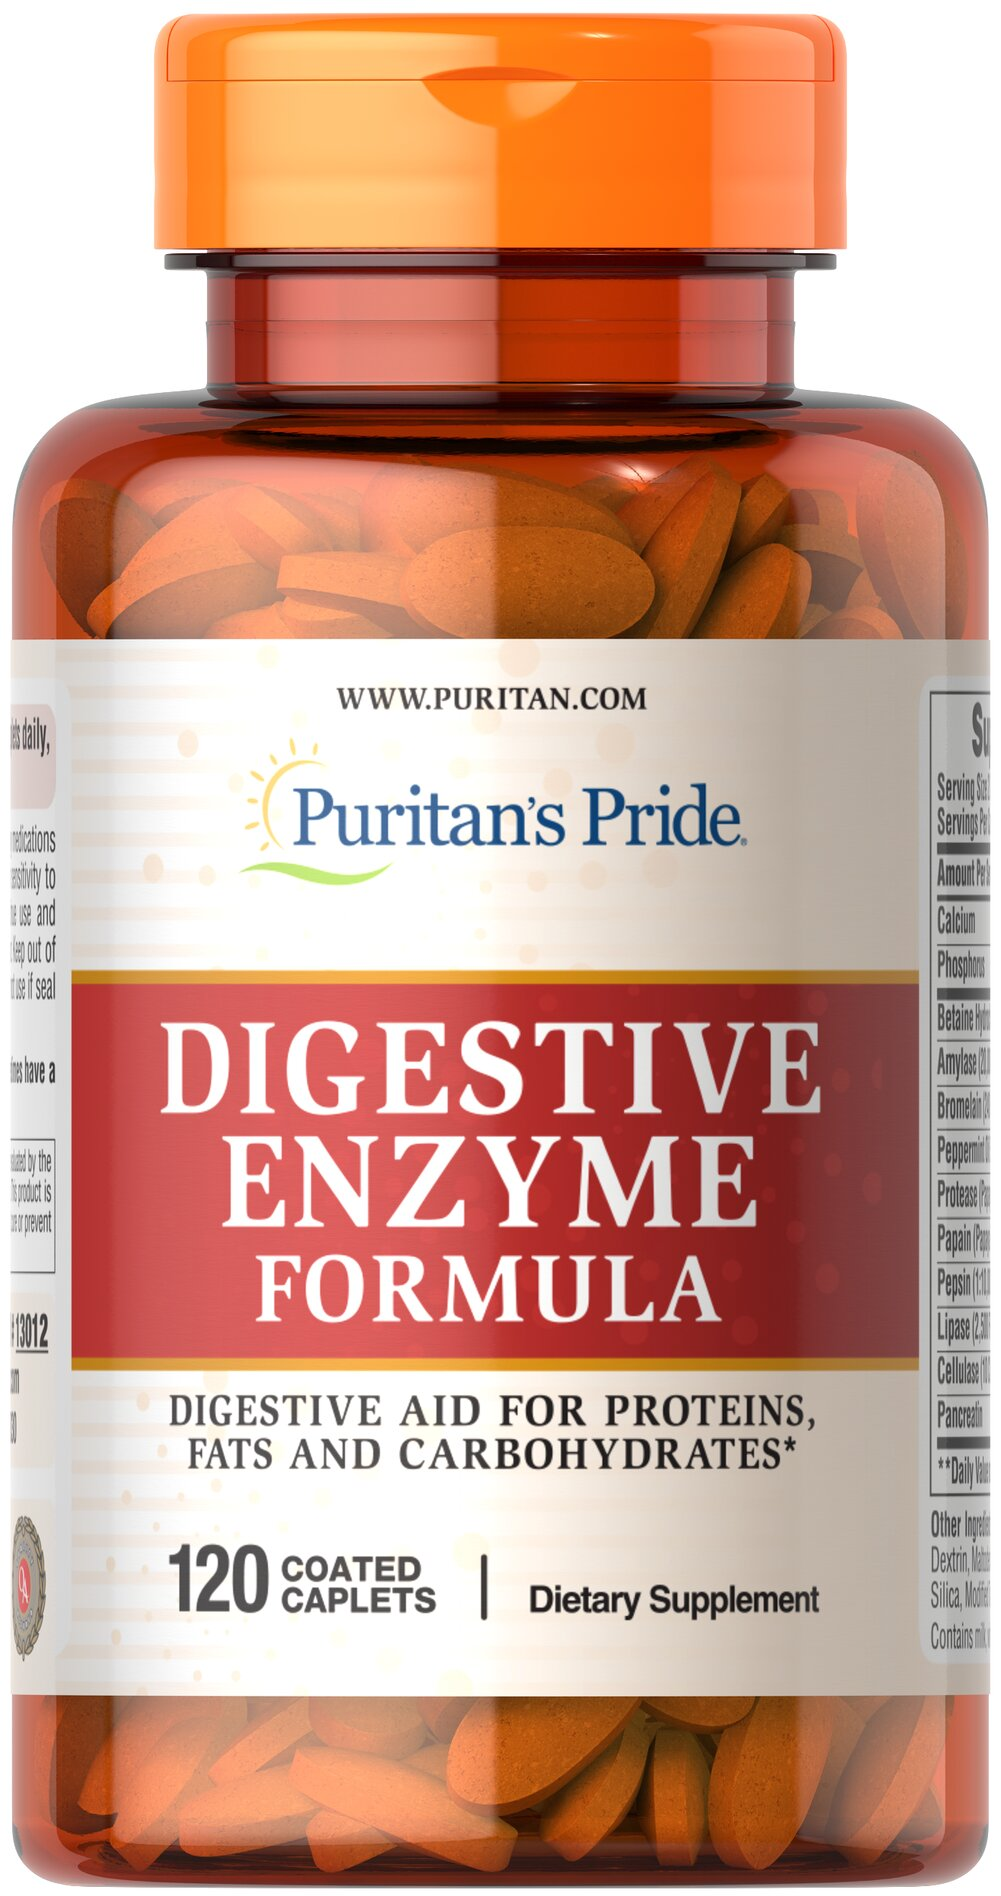 Super Strength Multi Enzyme <p>Enzymes break down the nutritional components of proteins, fats and carbohydrates, making these nutrients available for the body's energy needs, cell growth and other vital functions.** This holistically balanced blend is an enzyme formula that can be used to support proper digestion.**</p><p>Adults can take two (2) caplets, preferably with a meal.</p> 120 Caplets